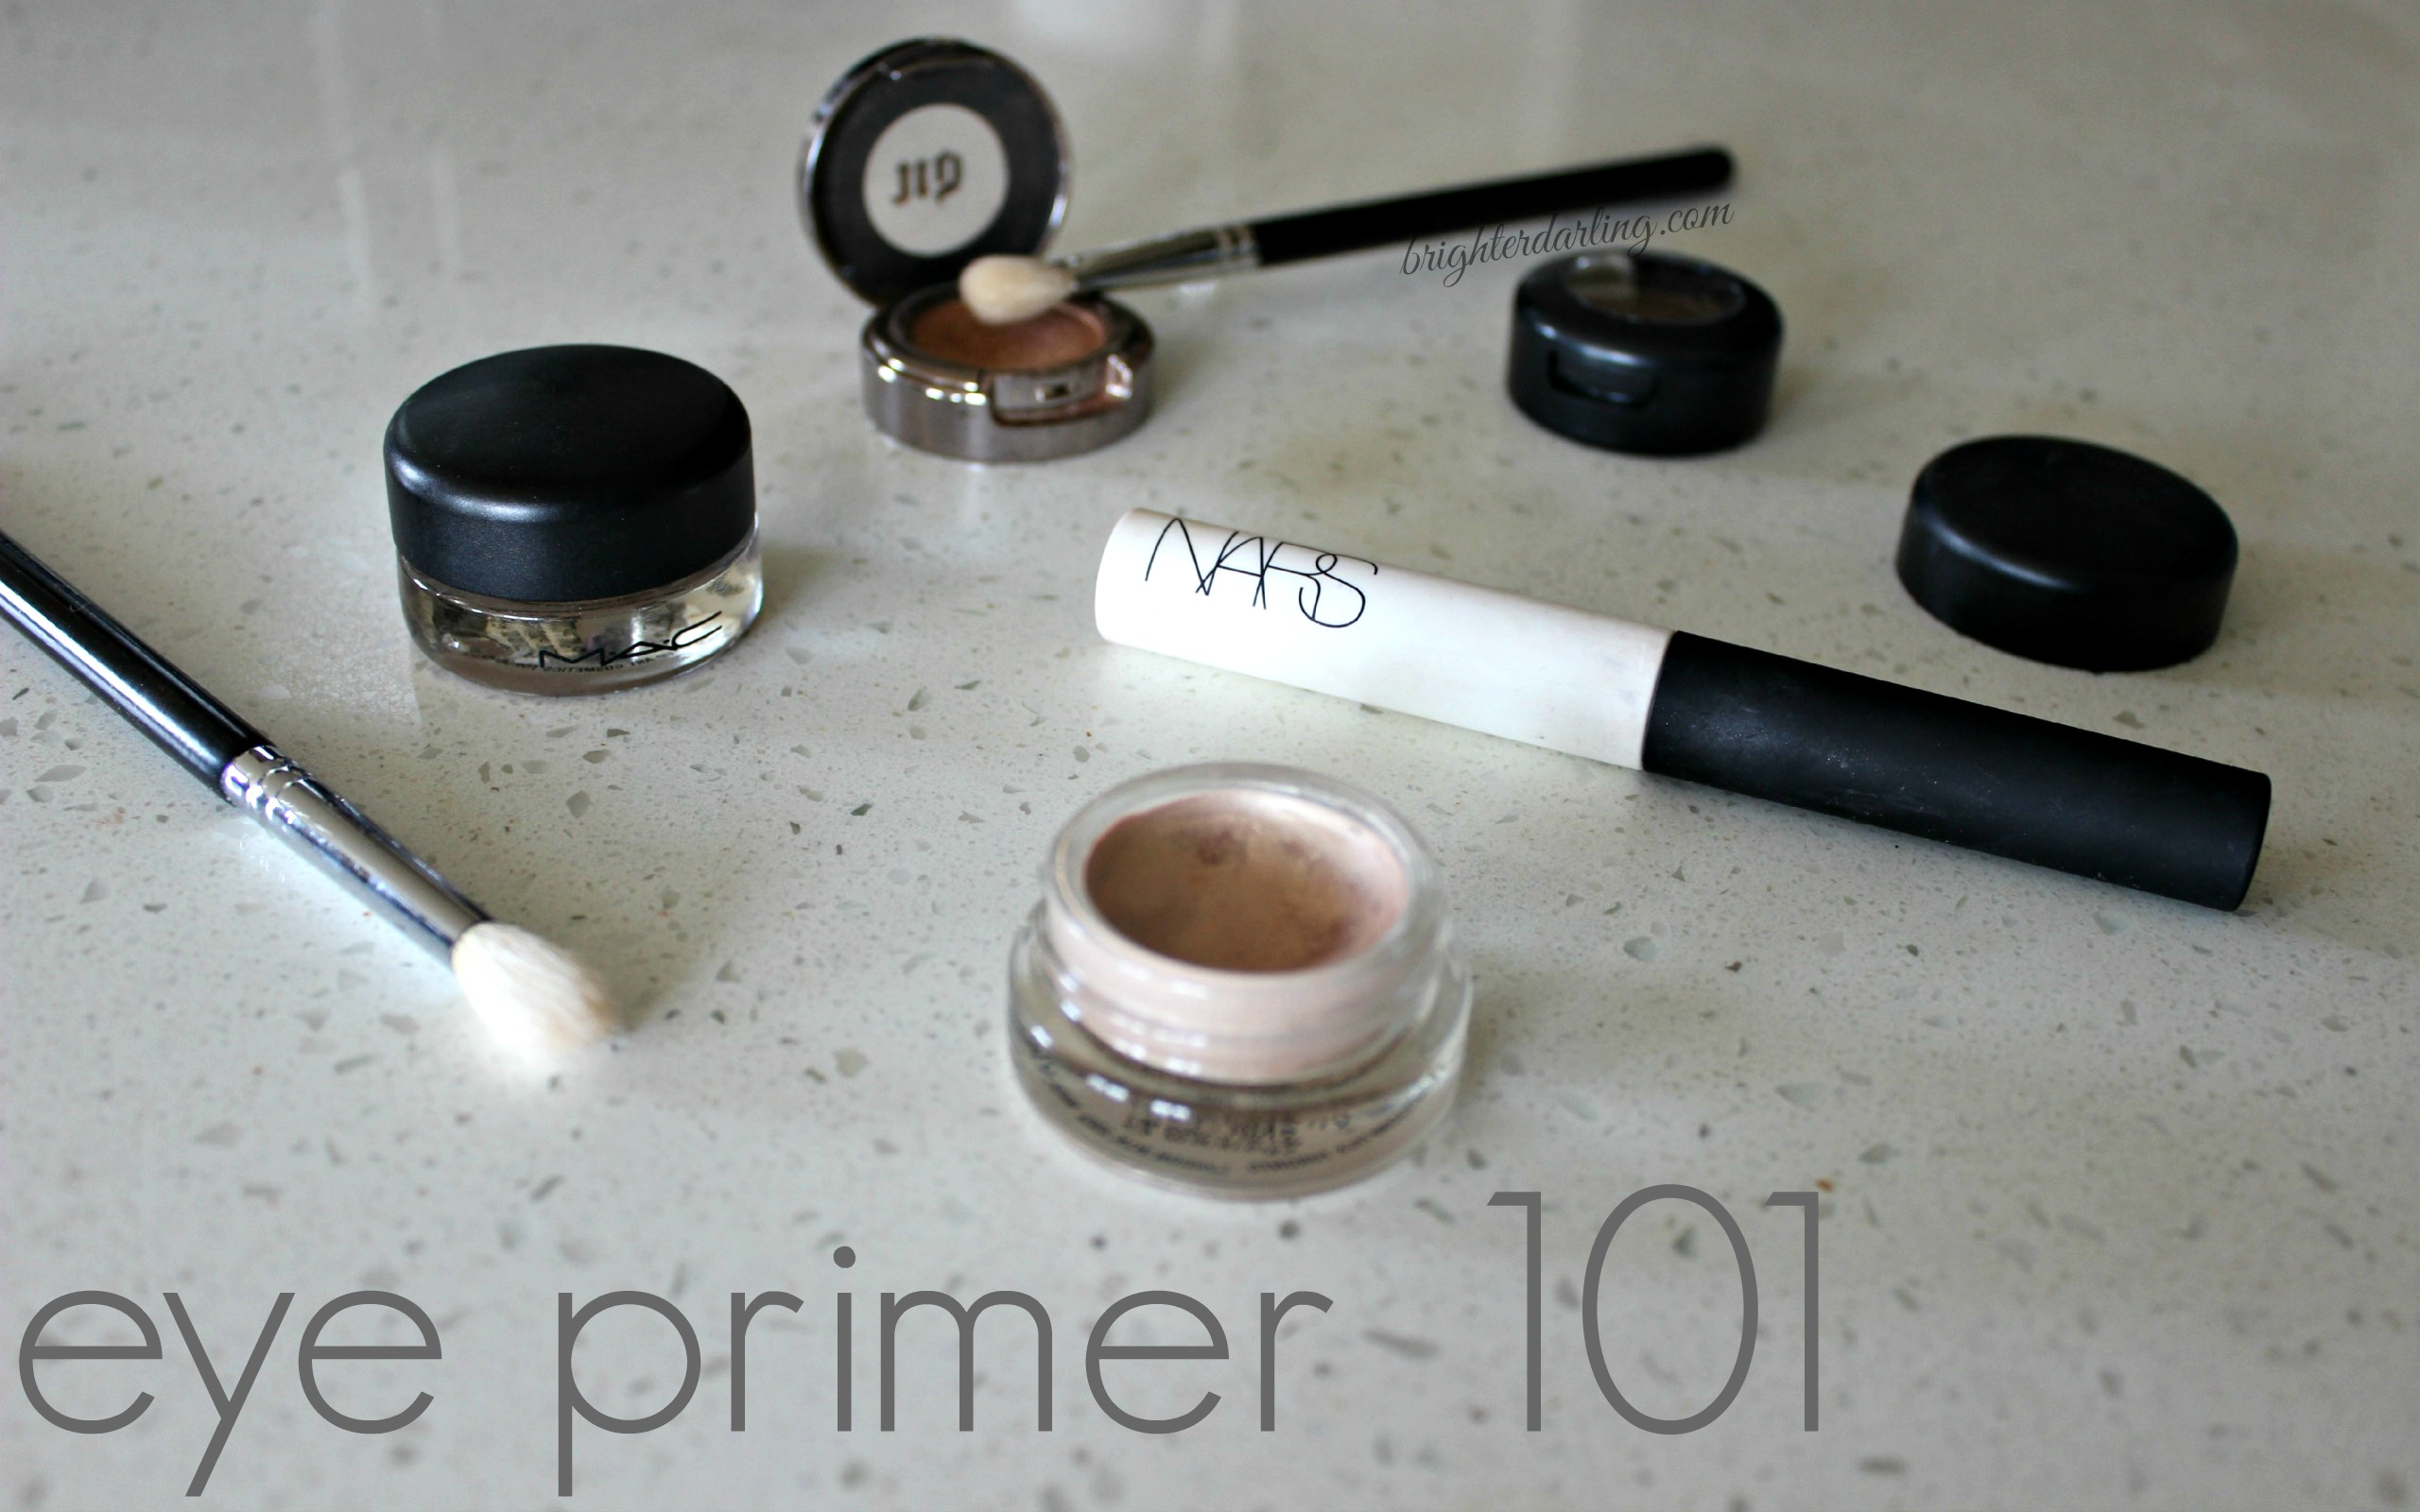 Why You Need Eye Primer | MAC Painterly MAC Bare Study NARS | Brighterdarling.com